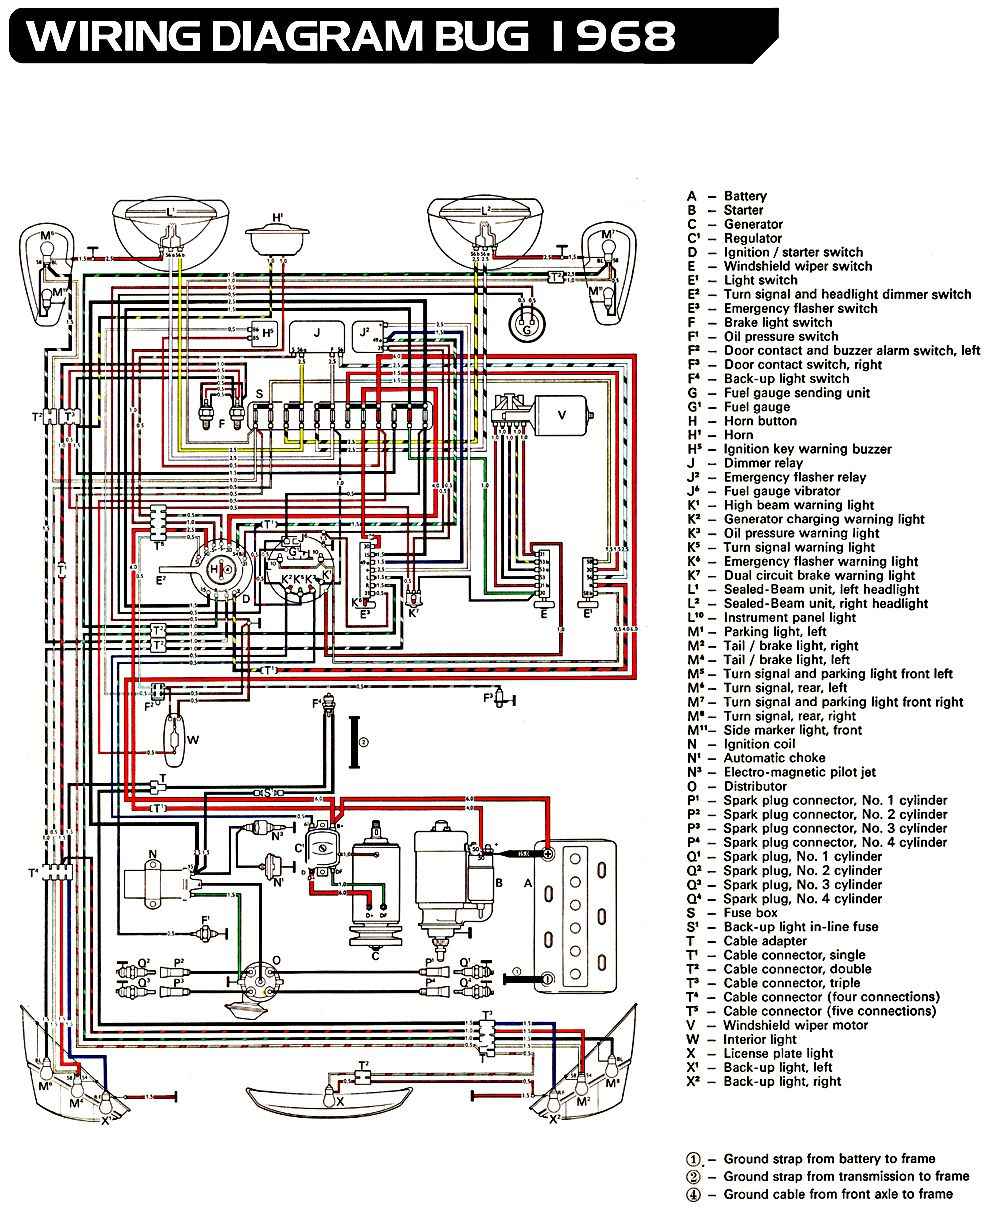 3a1908112d3826270ed5e3be362292bf vw bug ignition wiring diagram 73 vw wiring diagram free vw bug wiring diagram at creativeand.co